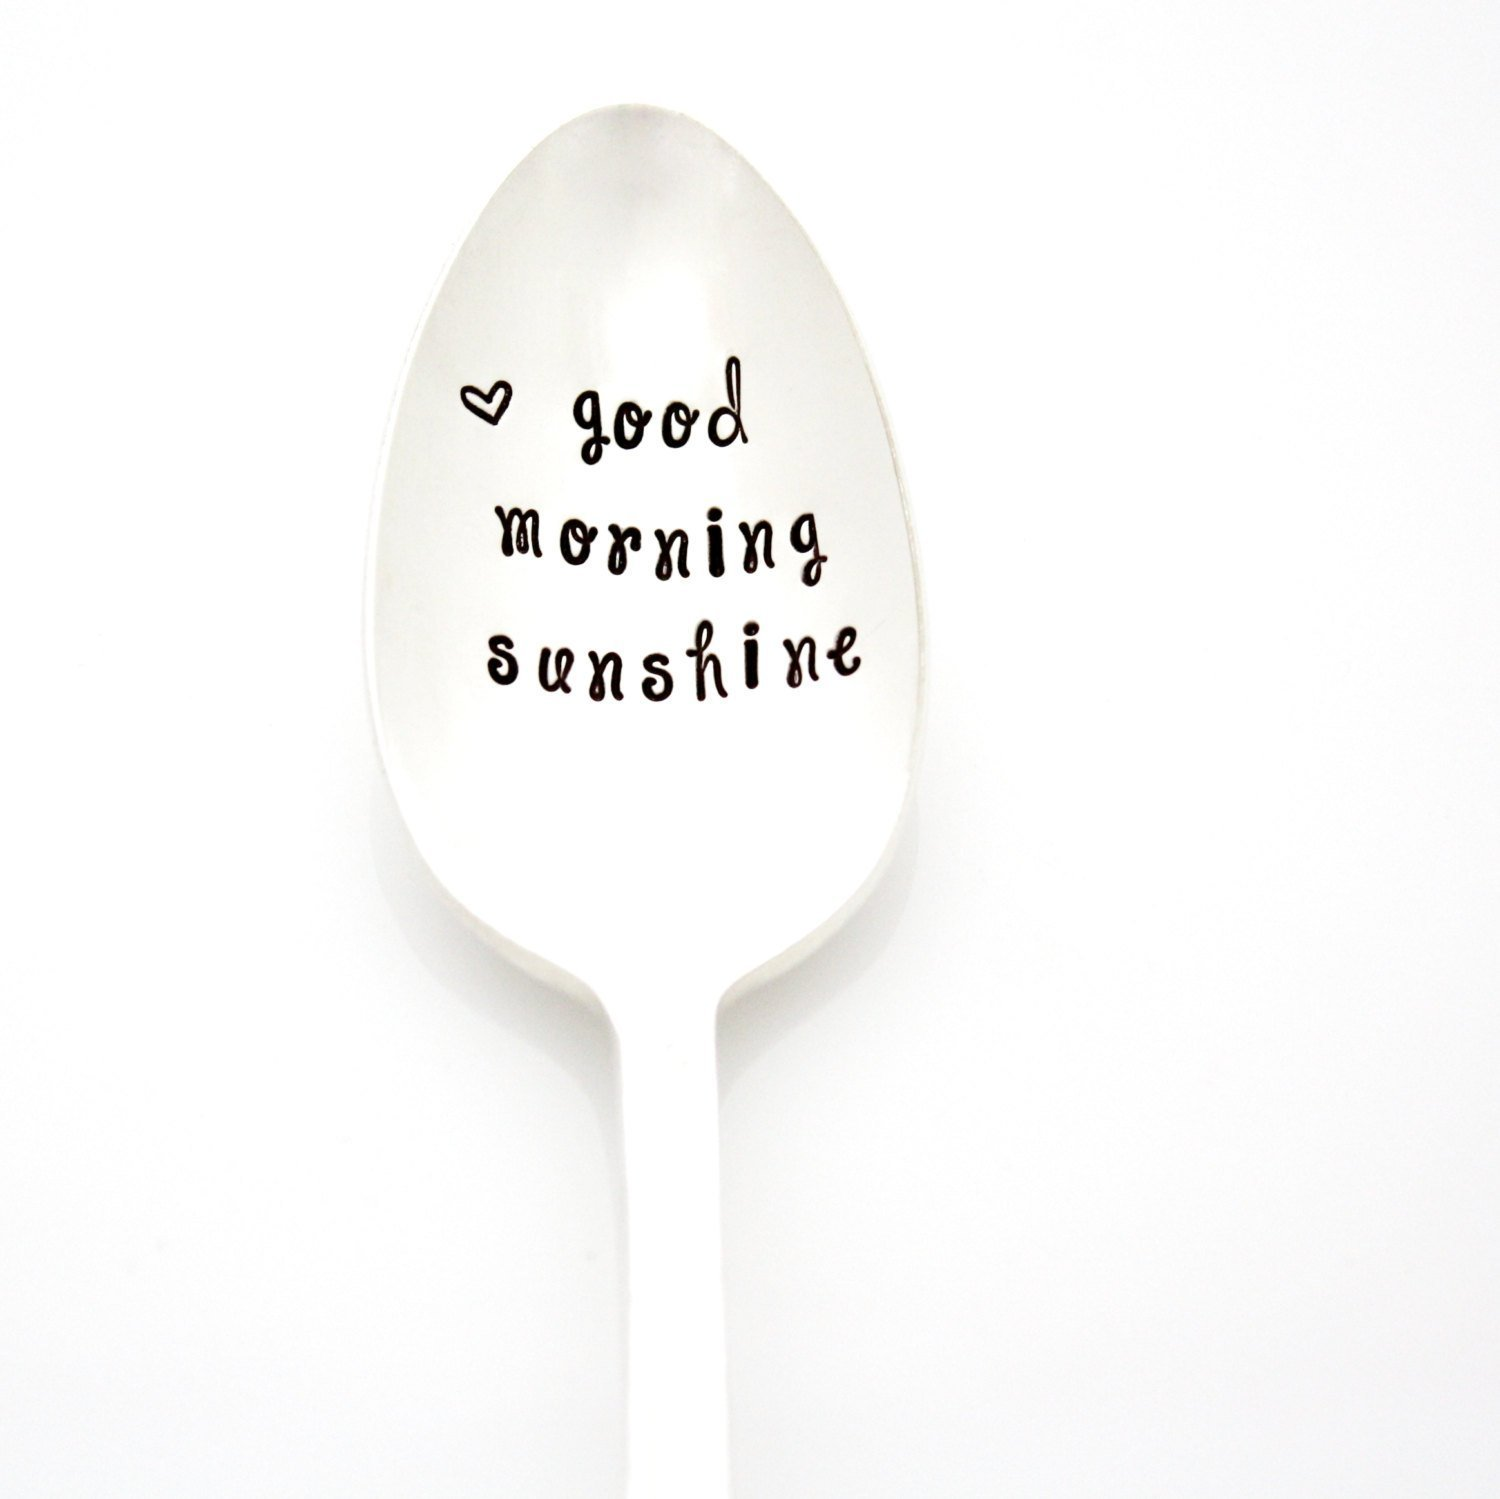 Good Morning Sunshine. Hand Stamped Spoon for Stirring Coffee or Tea. Handstamped Vintage Spoons by Milk & Honey. Part of the Martha Stewart American Made Market.